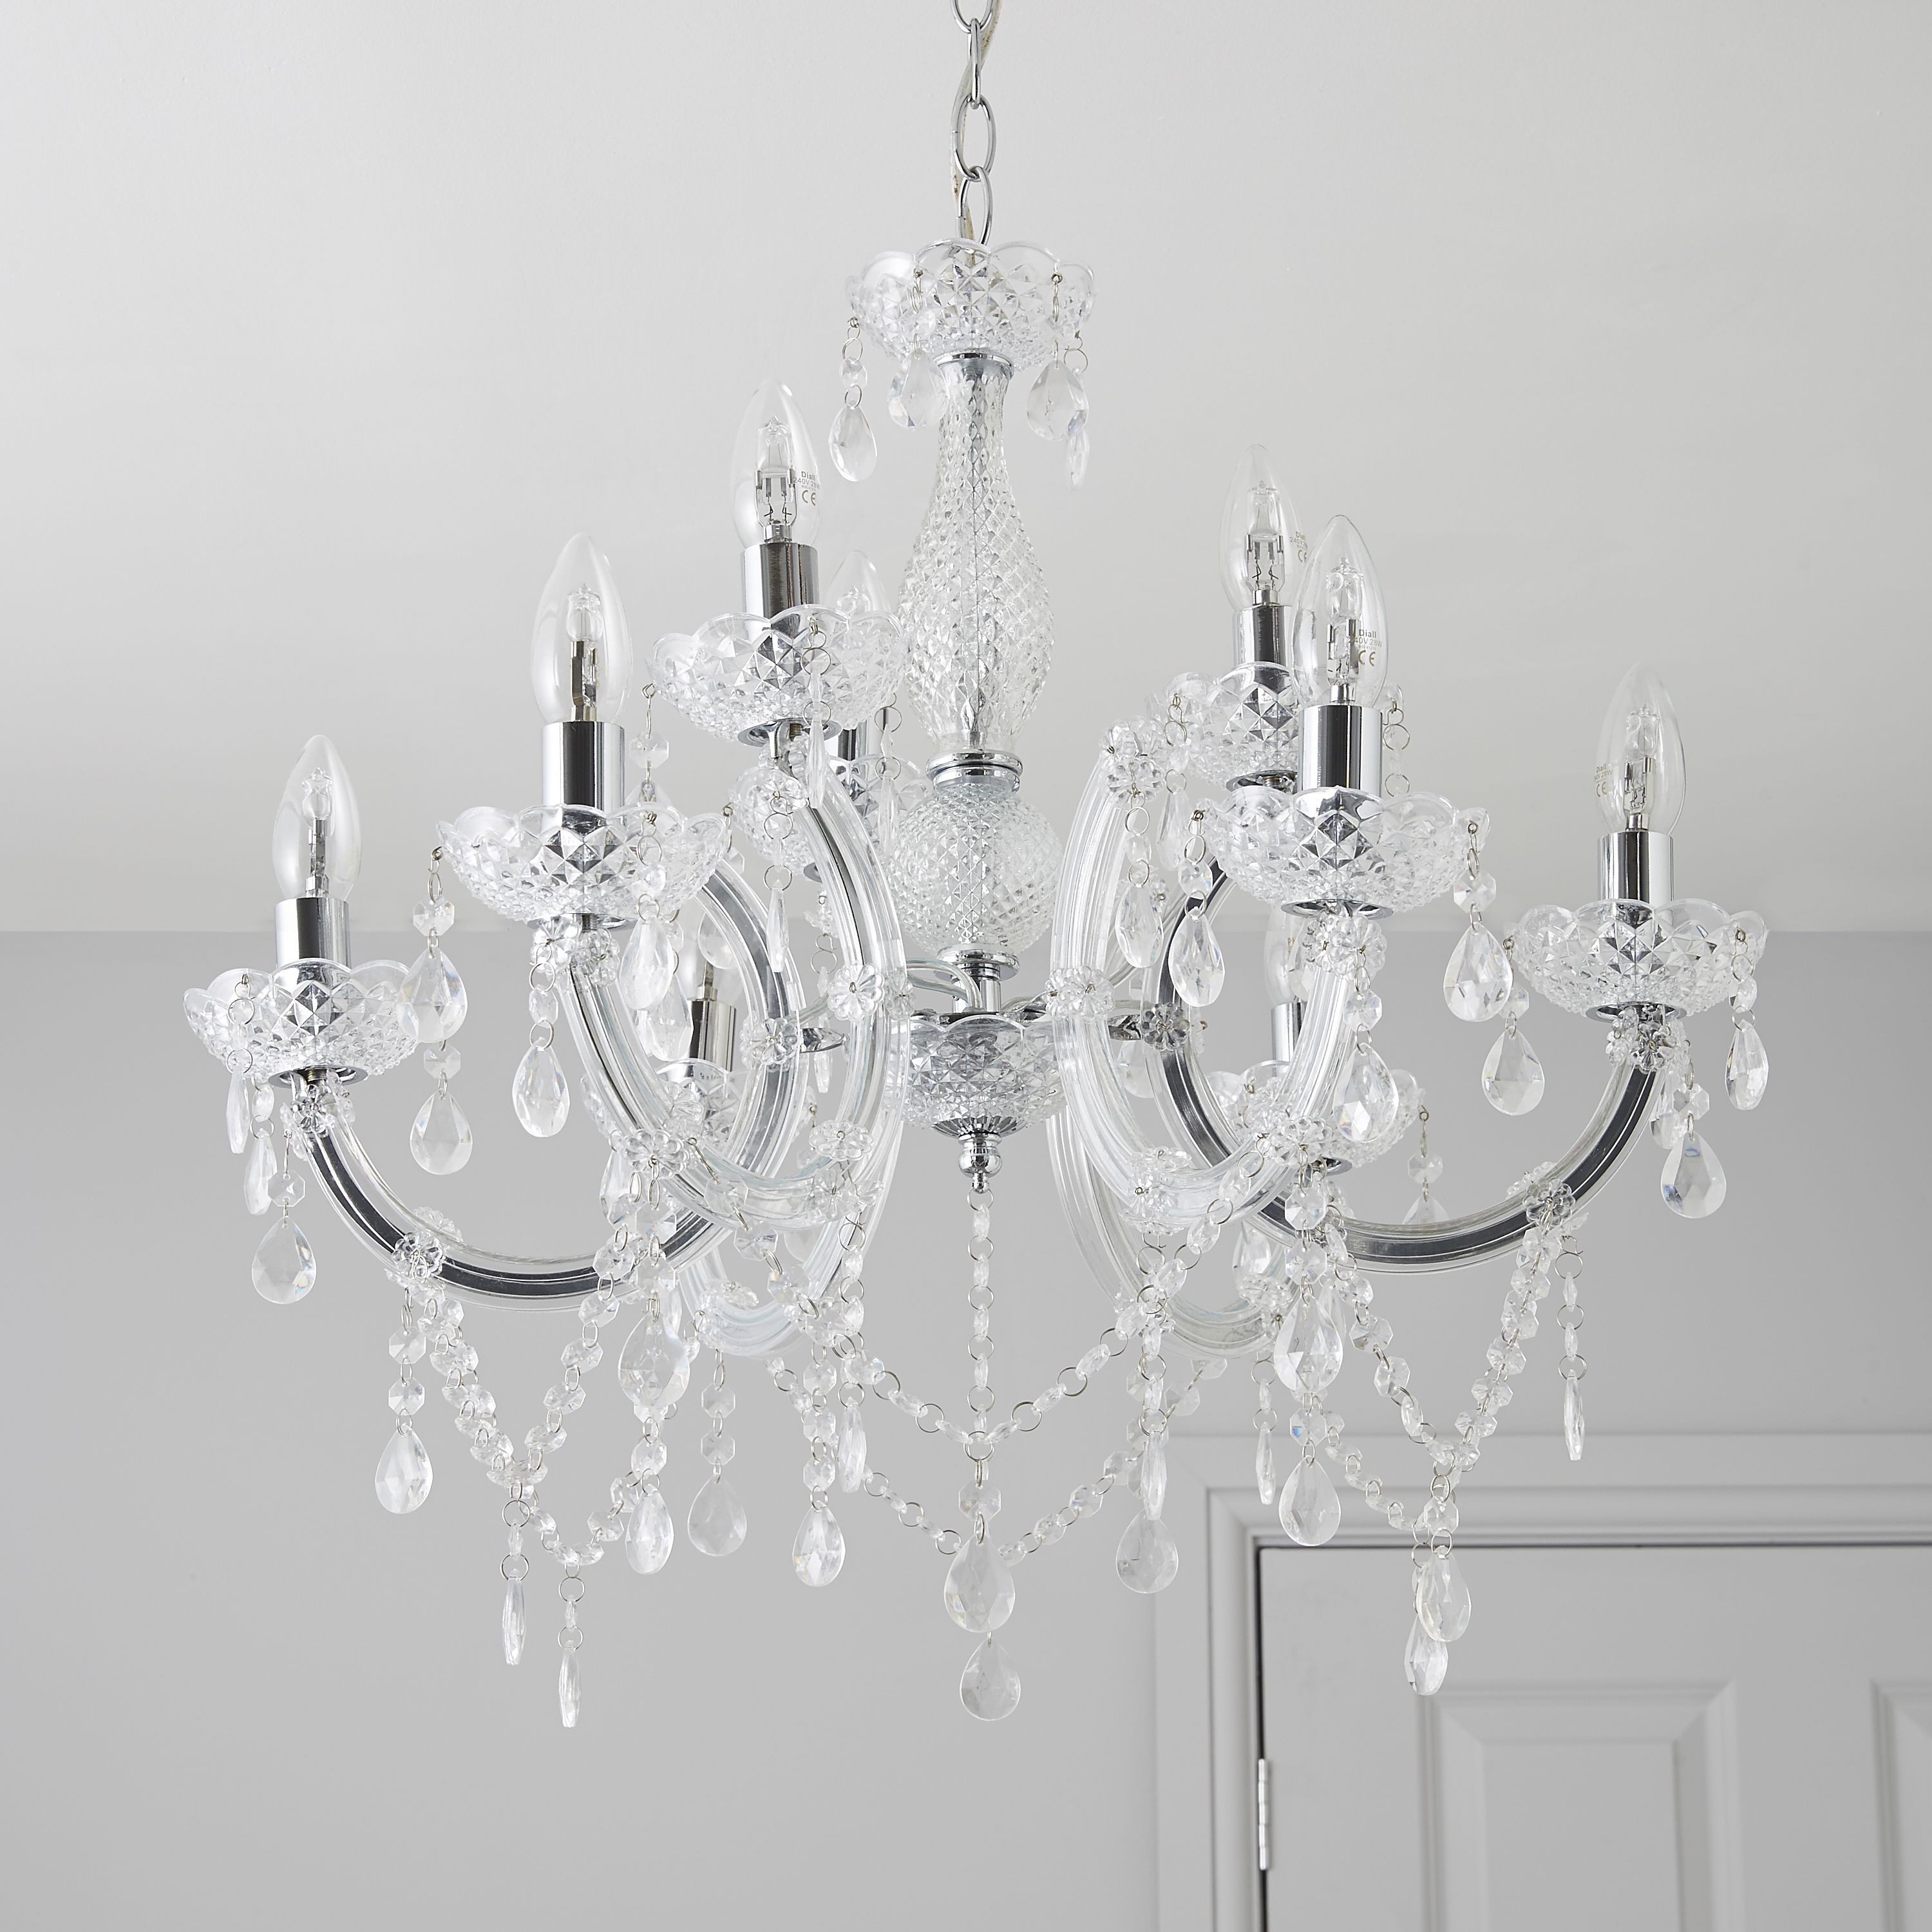 Pleasing 80 bathroom chandeliers b q design ideas of 529 best crystal lamp images on pinterest - Bathroom chandeliers crystal ...